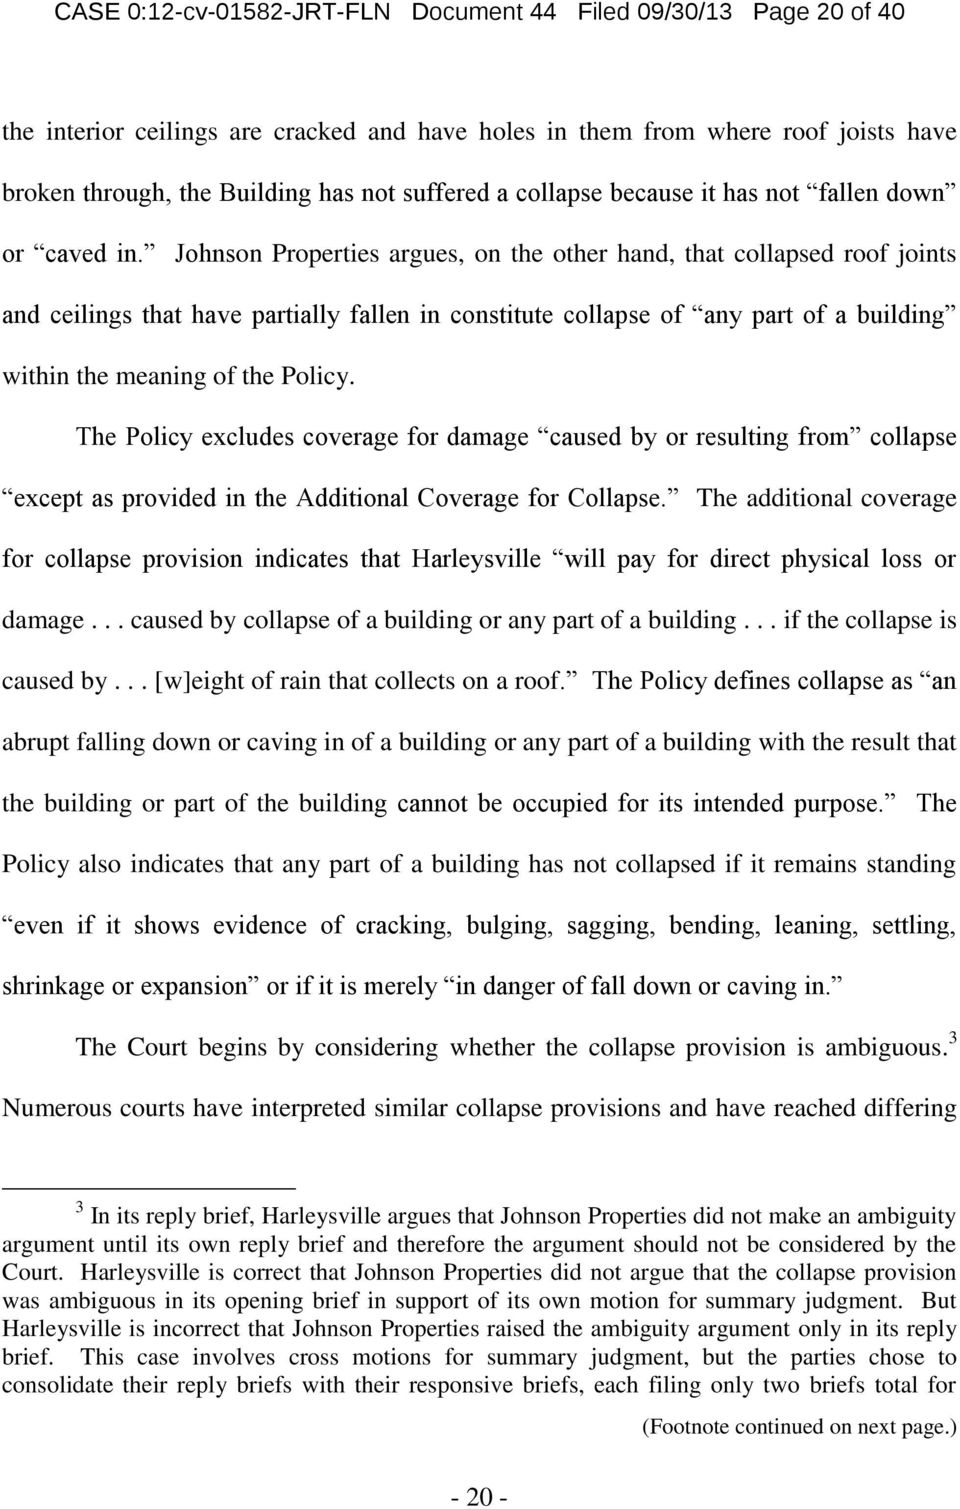 Johnson Properties argues, on the other hand, that collapsed roof joints and ceilings that have partially fallen in constitute collapse of any part of a building within the meaning of the Policy.